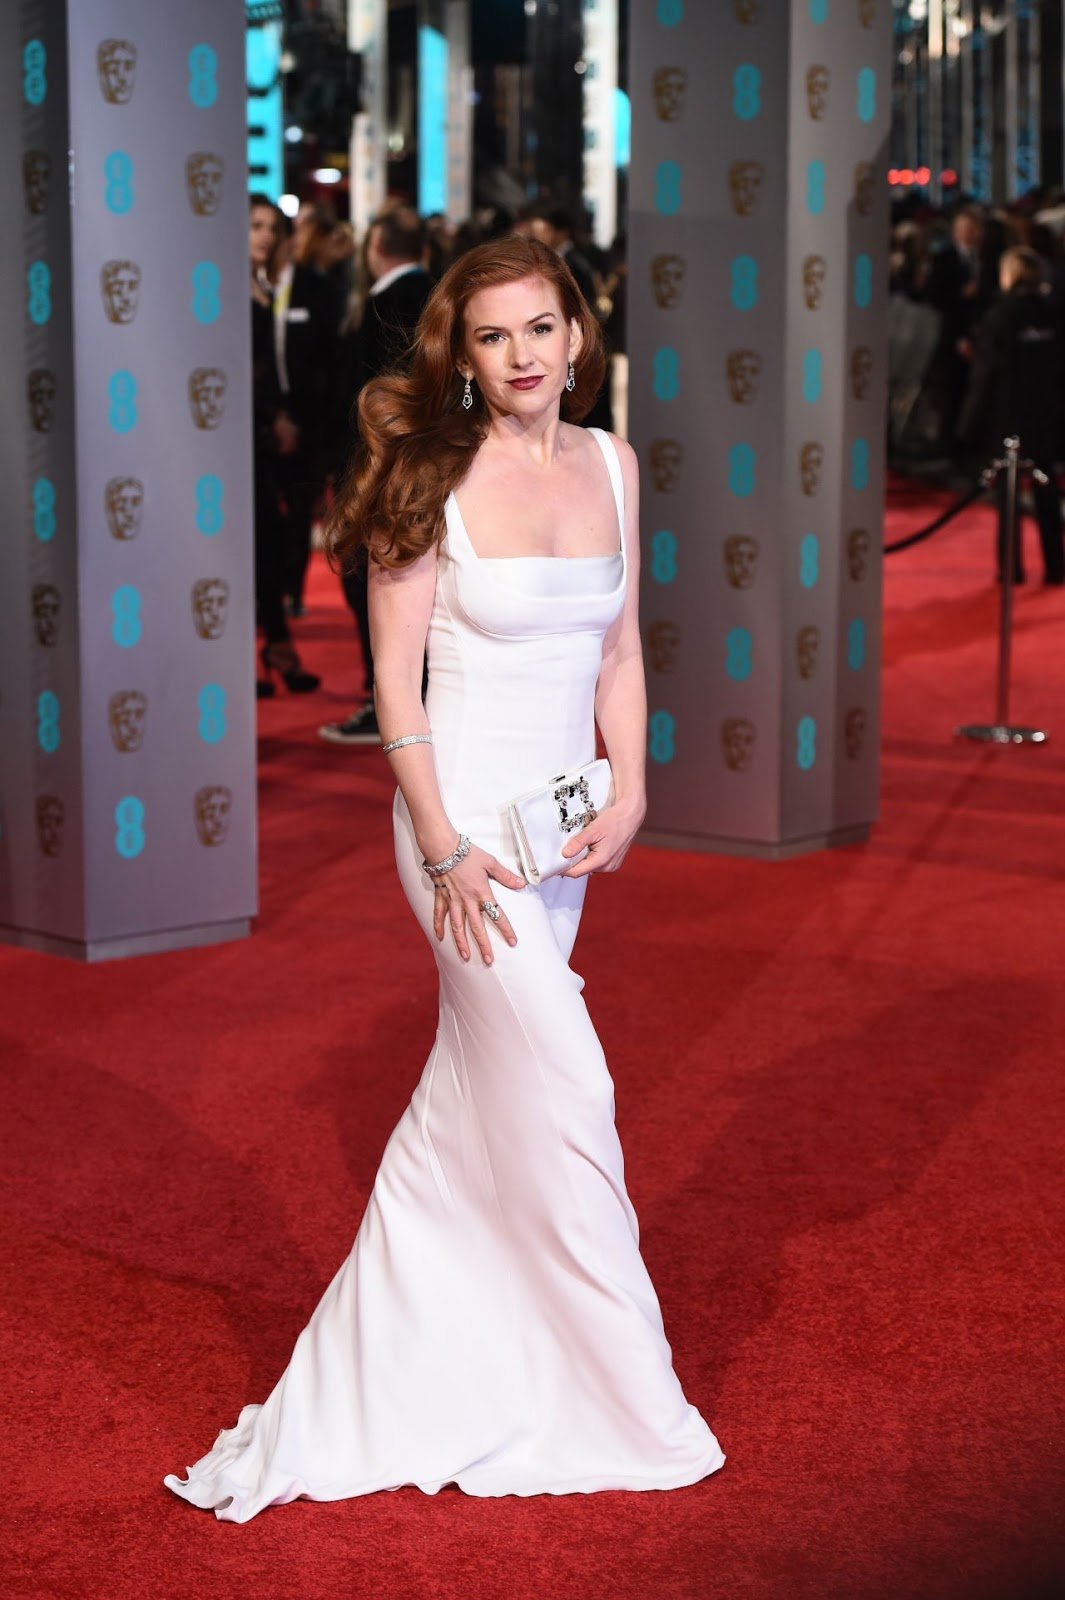 Isla Fisher channels old Hollywood glamour at the BAFTAs 2016